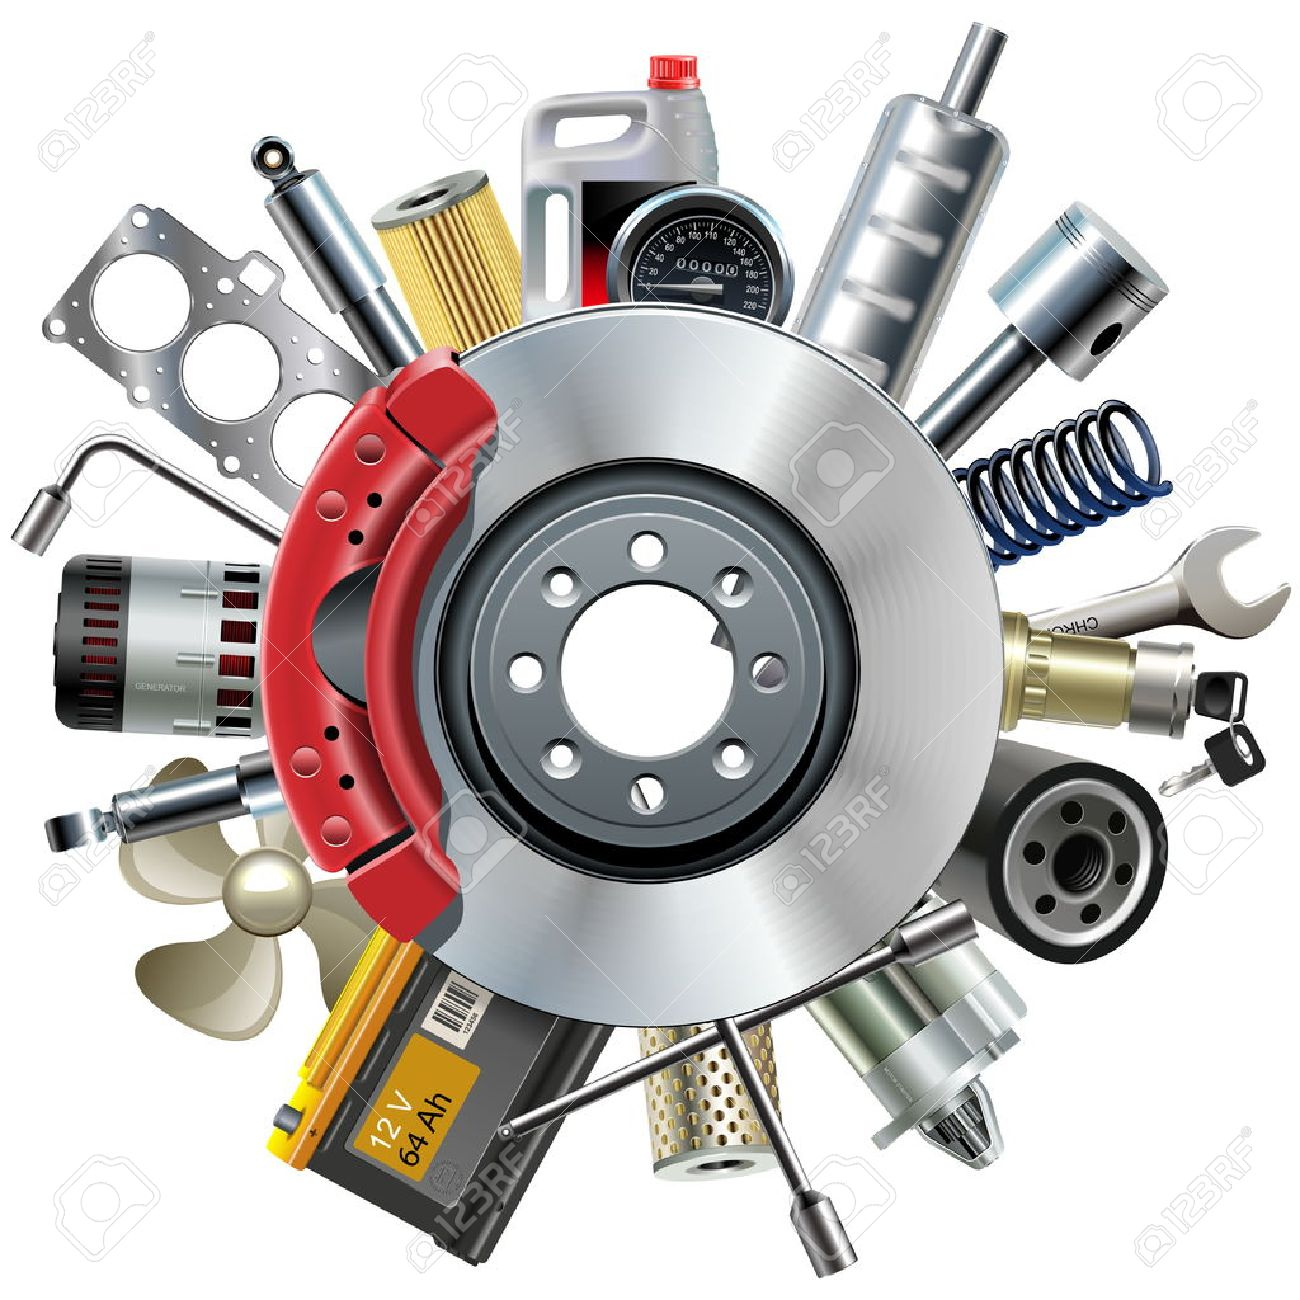 15,904 Auto Parts Cliparts, Stock Vector And Royalty Free Auto Parts ...